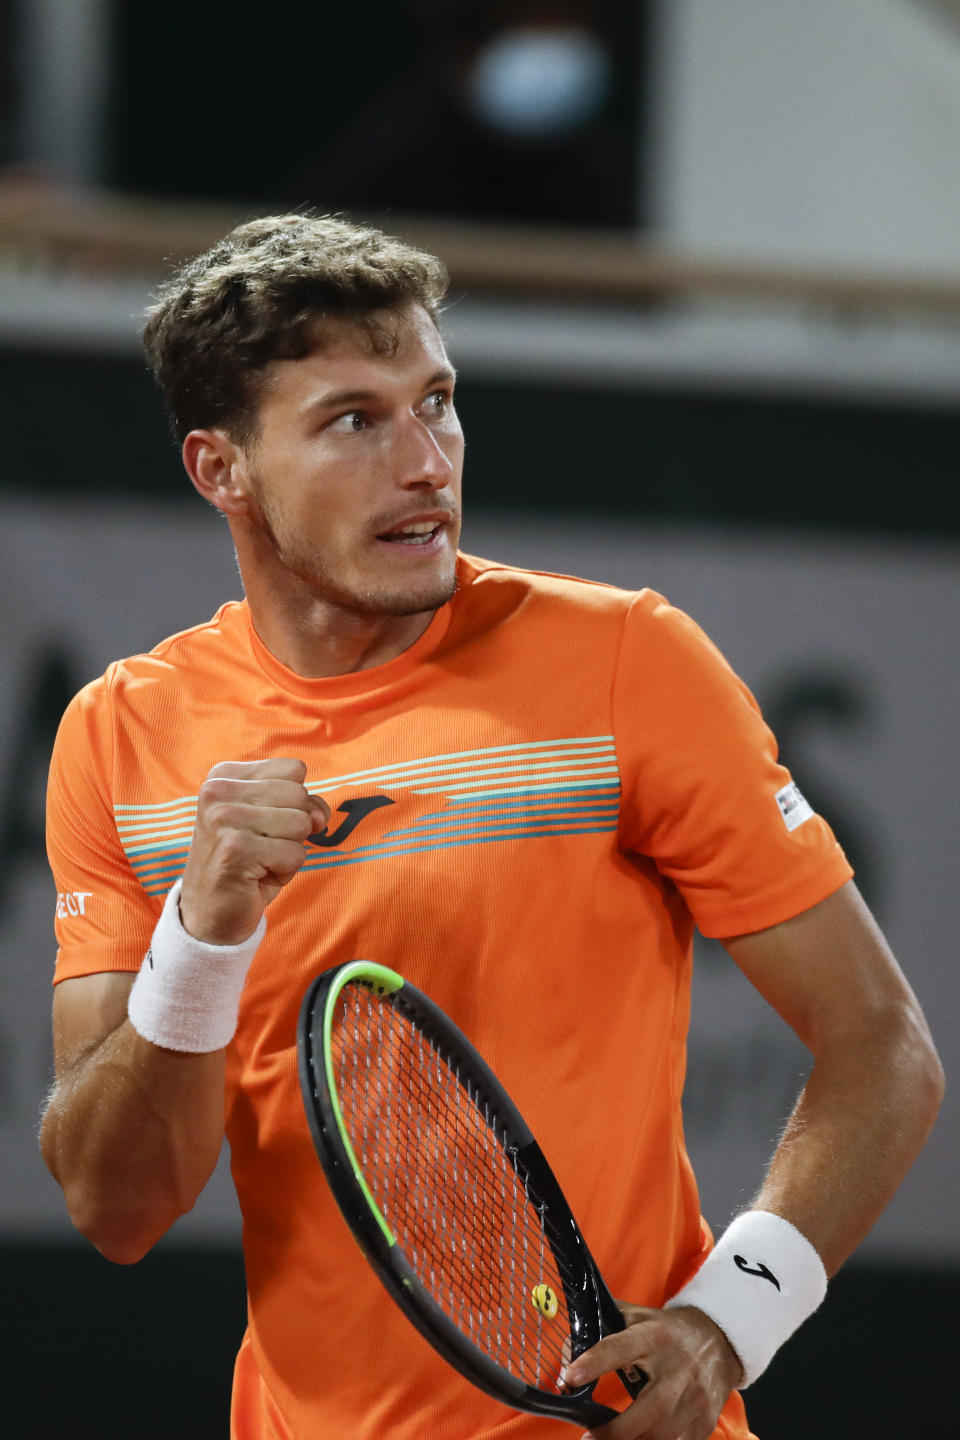 Spain's Pablo Carreno Busta clenches his fist after scoring a point against Germany's Daniel Altmaier in the fourth round match of the French Open tennis tournament at the Roland Garros stadium in Paris, France, Monday, Oct. 5, 2020. (AP Photo/Alessandra Tarantino)